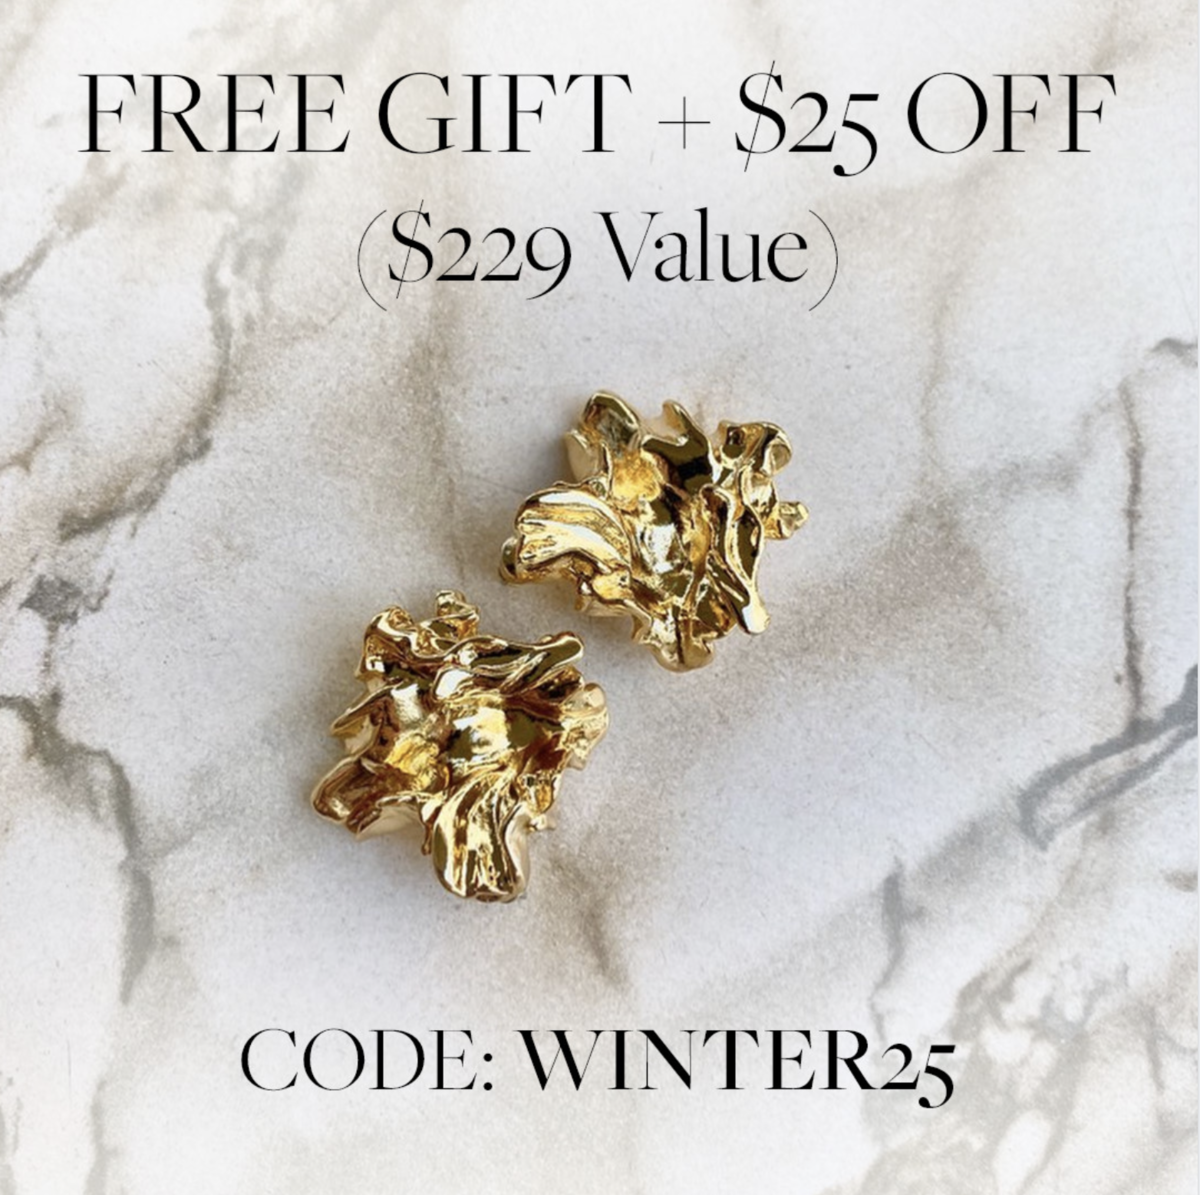 CURATEUR Coupon Code – Save $25 + FREE Amber Sceats Earrings